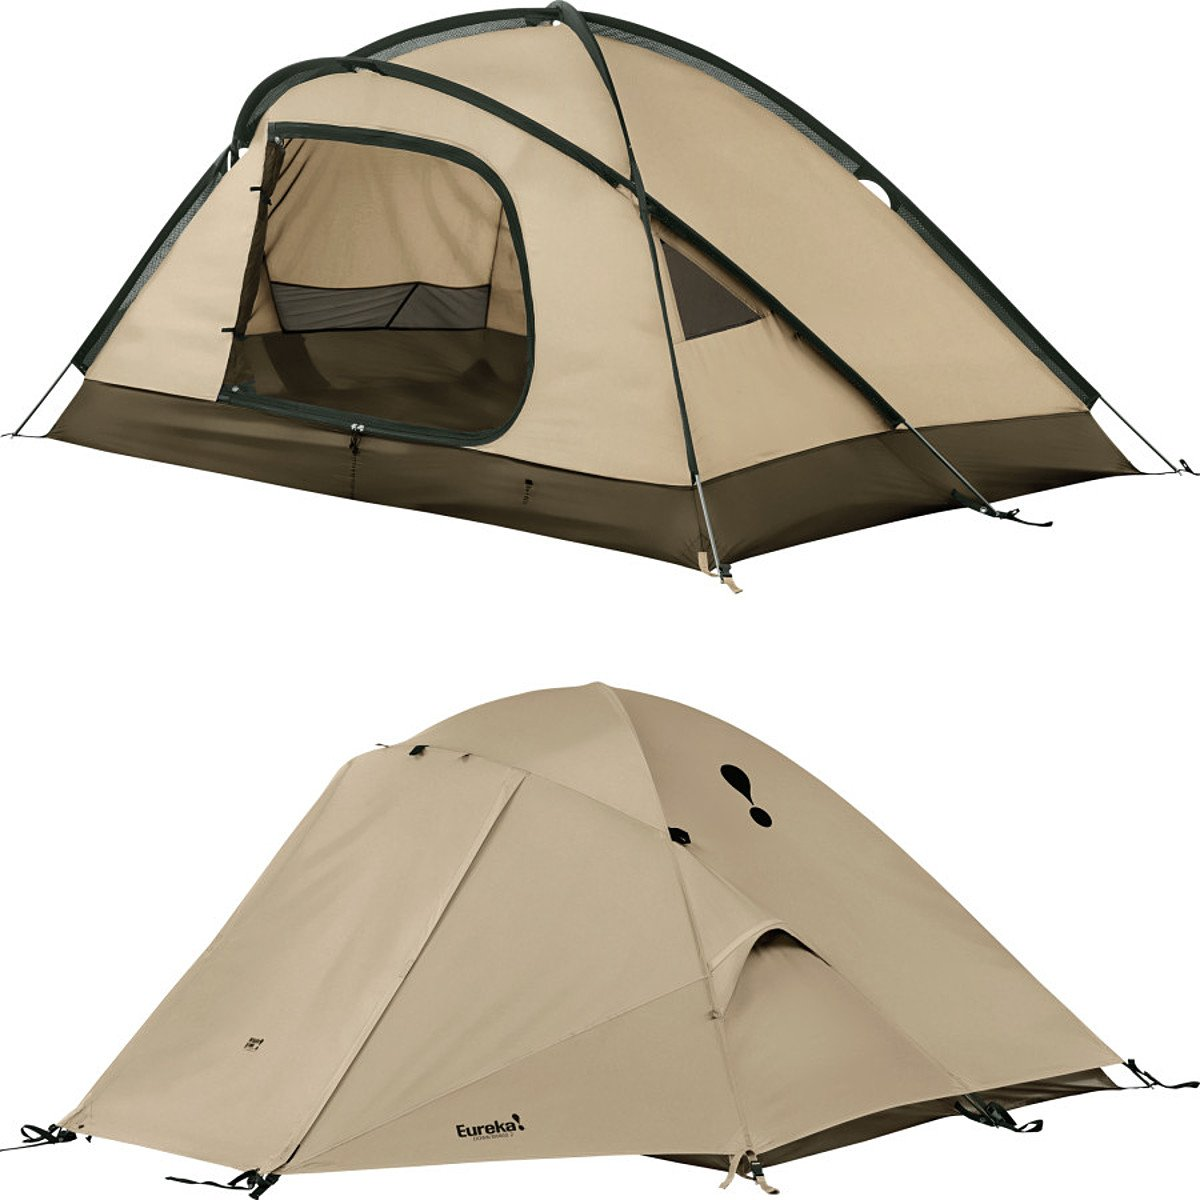 However Iu0027m not really keen on the weight nor the tent style. Iu0027m leaning towards purchasing this one by Nemo the Galaxi 2P in Earth Brown ...  sc 1 st  AR15.com & Are there any other good tan/earth color tents for 2-3 people ...